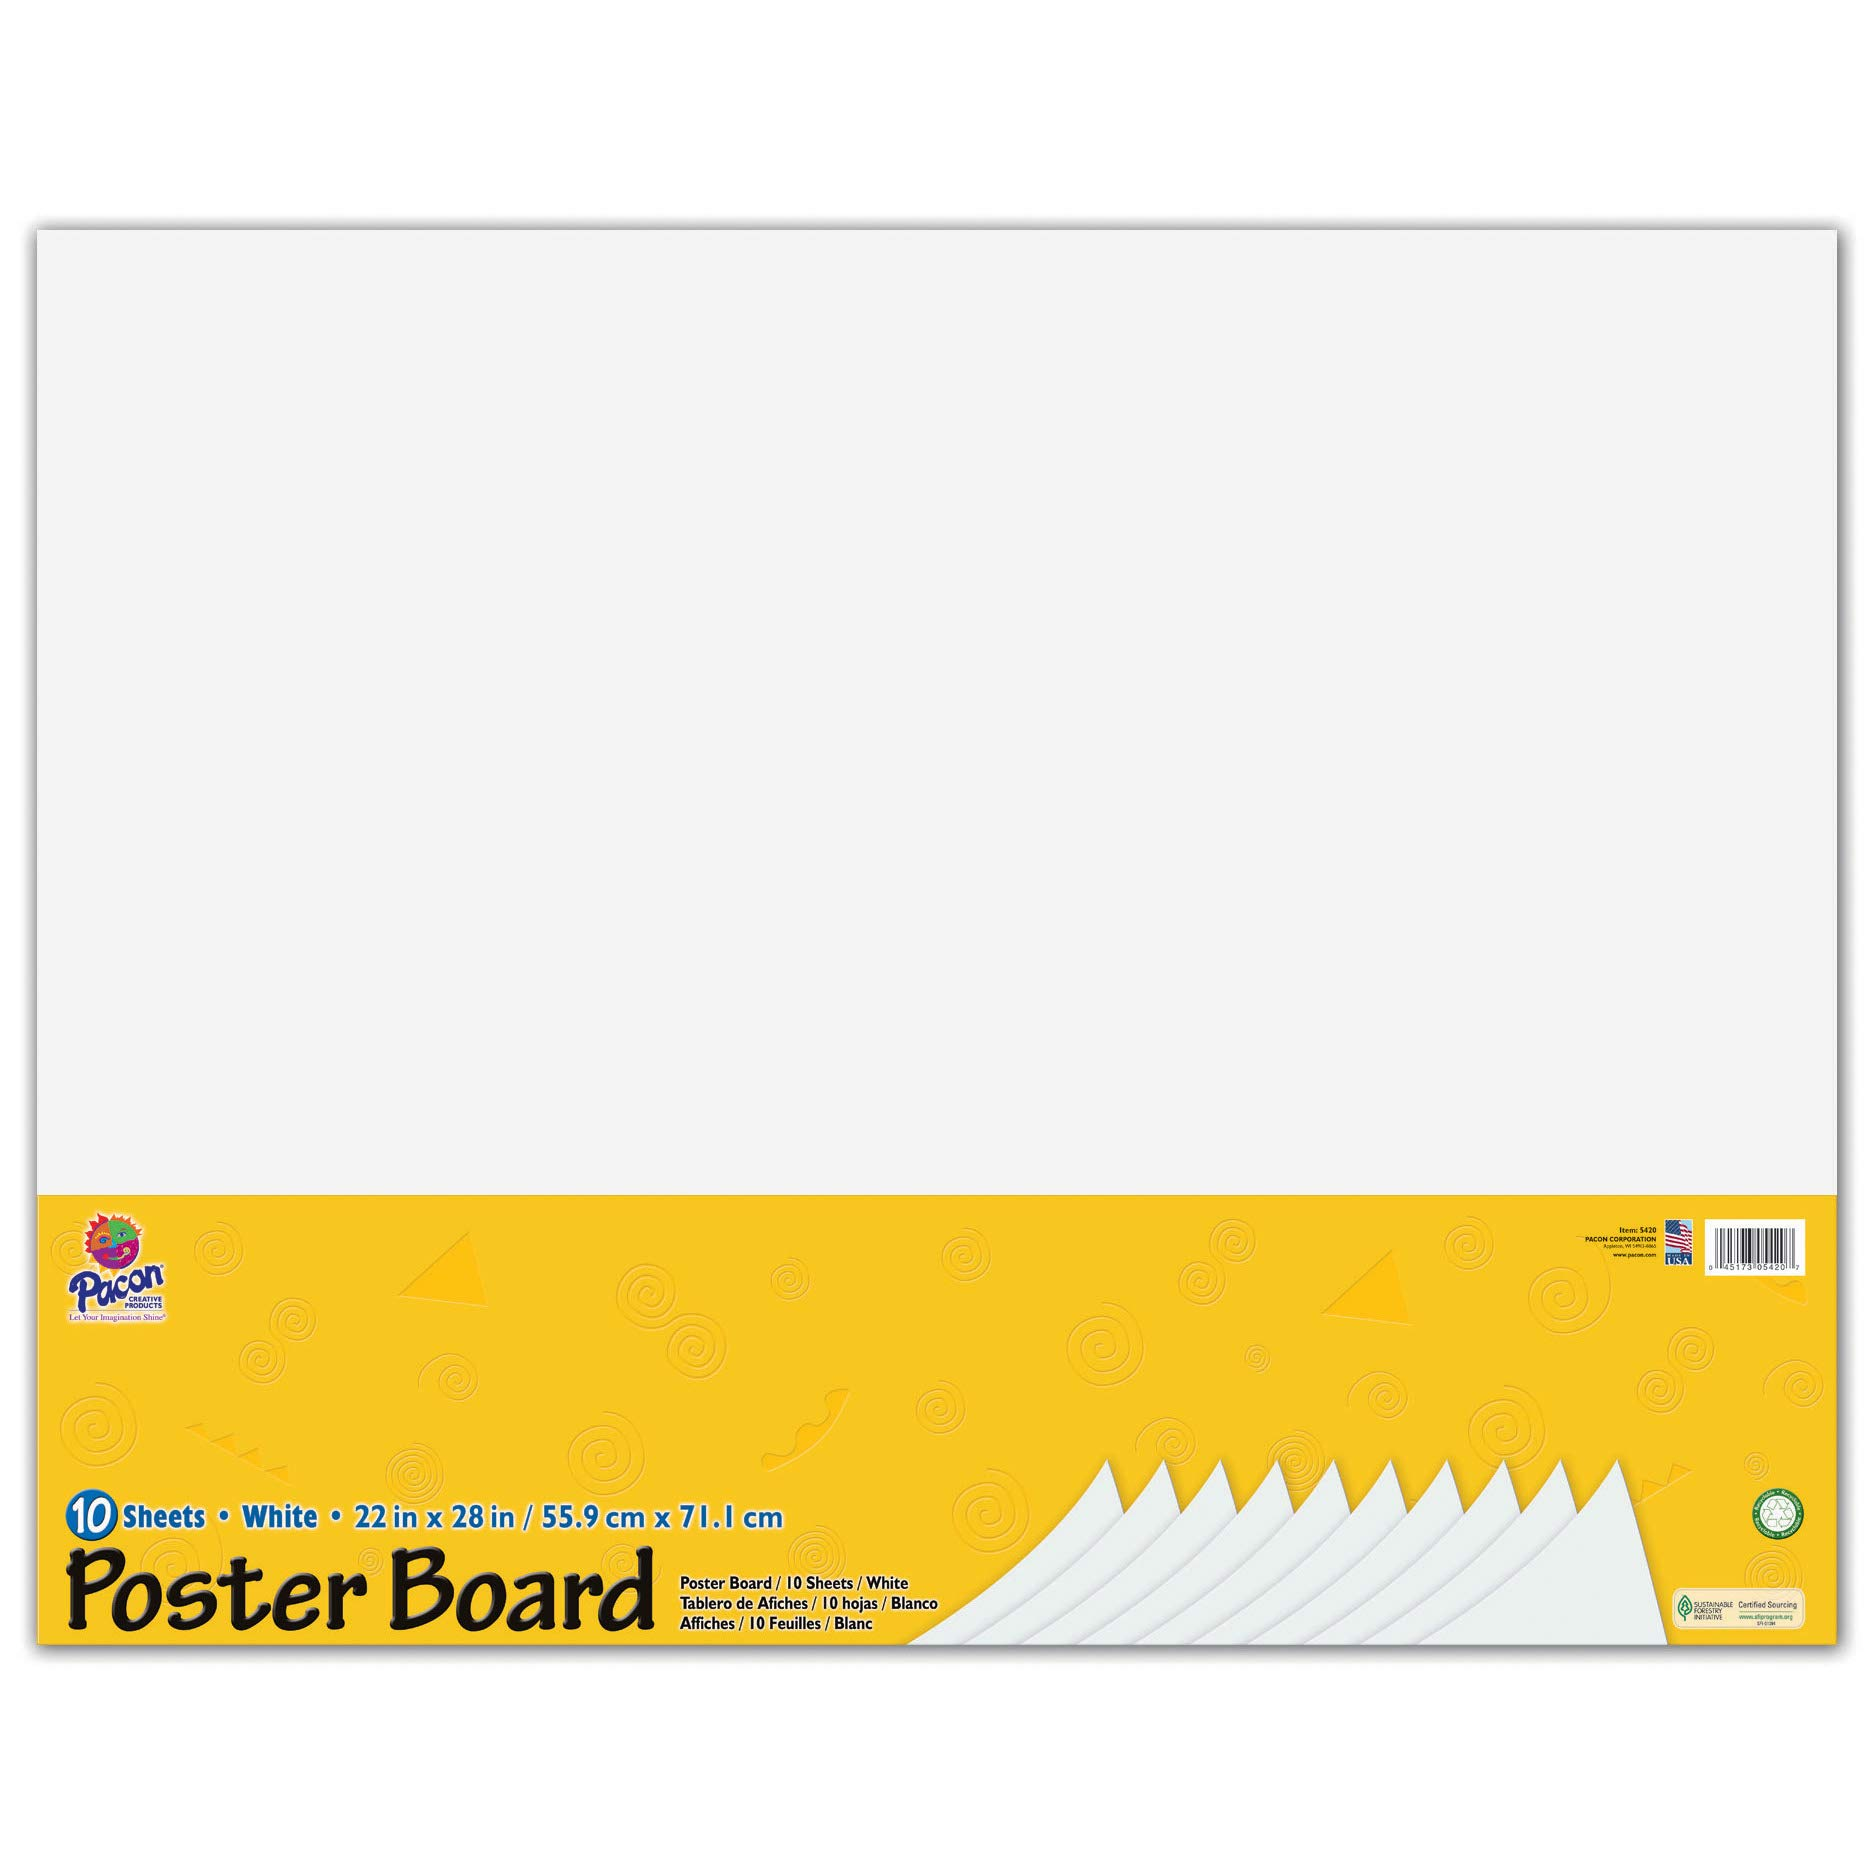 Pacon PAC5420BN Poster Board, White, 22'' x 28'', 10 Sheets Per Pack, 3 Packs by PACON